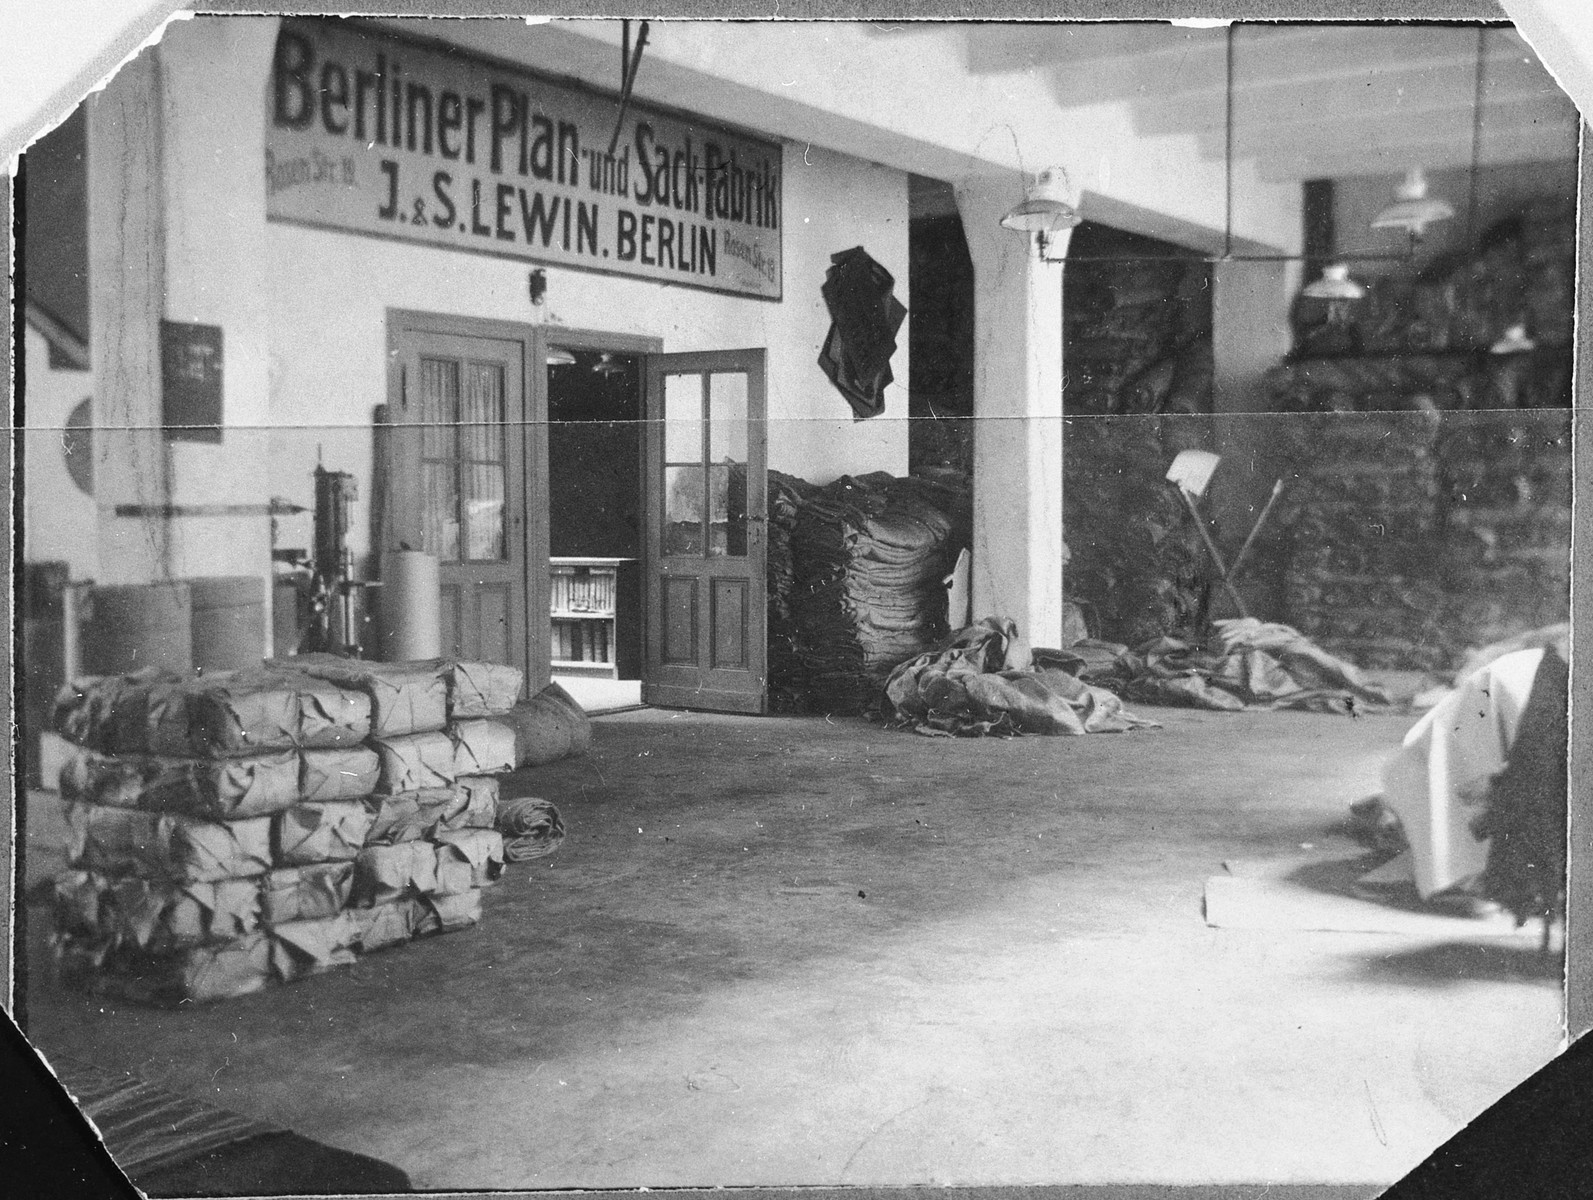 Storeroom with stacked bundles inside J.and S. Lewin's tarpaulin and sack factory.